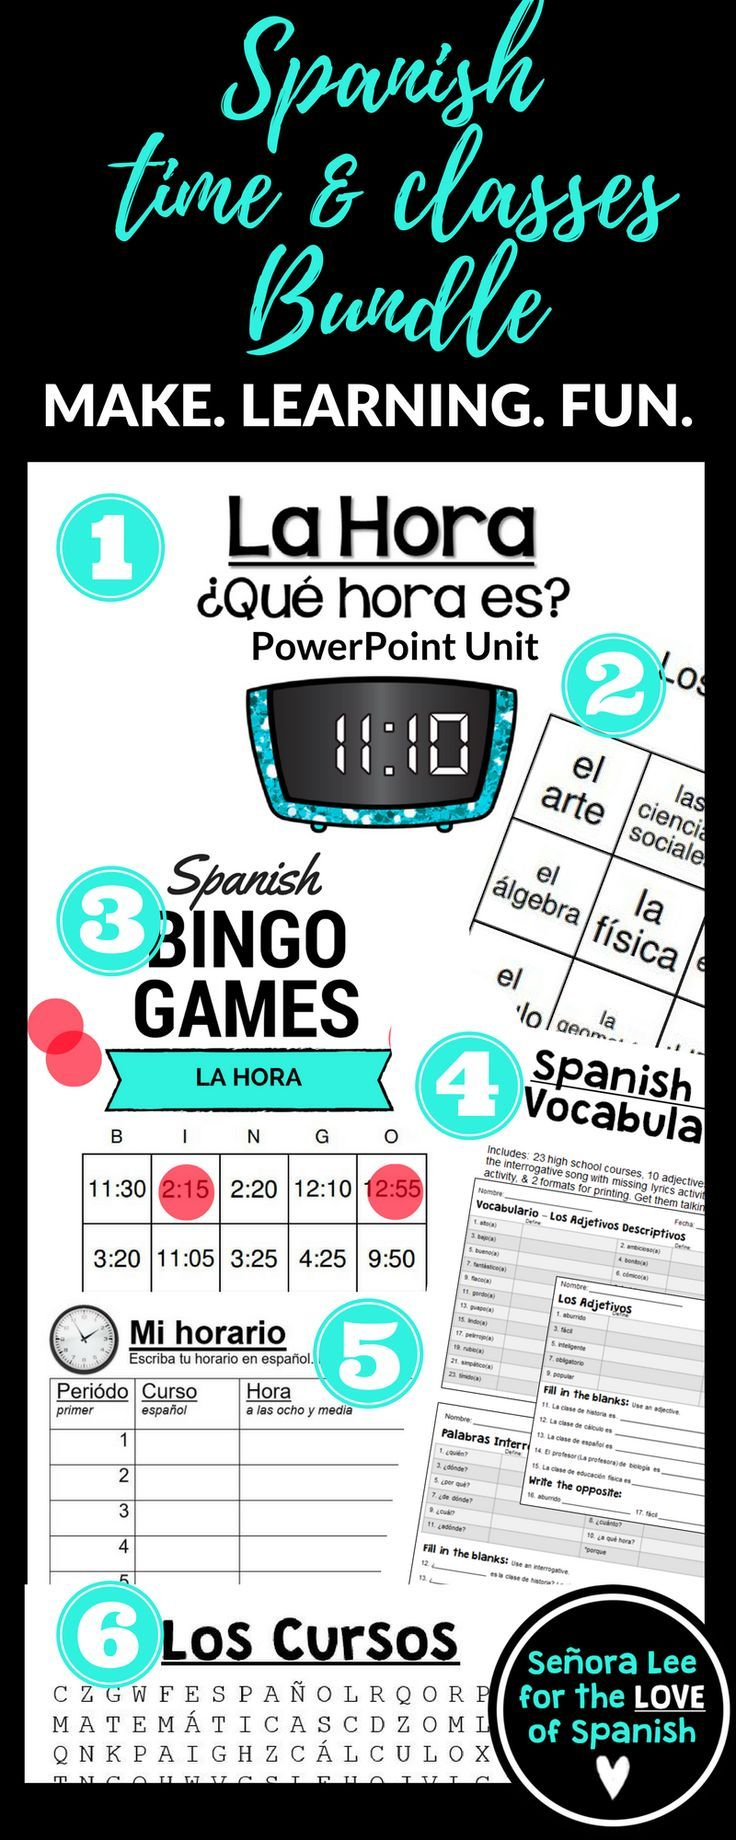 SIX great activities to get your students talking about their classes and telling time in Spanish! Includes: 1. Classes Word Search  2. Vocabulary Lists (keep vocab organized) 3. Classes Bingo (24 high school class subjects) 4. Time PowerPoint Unit (compr